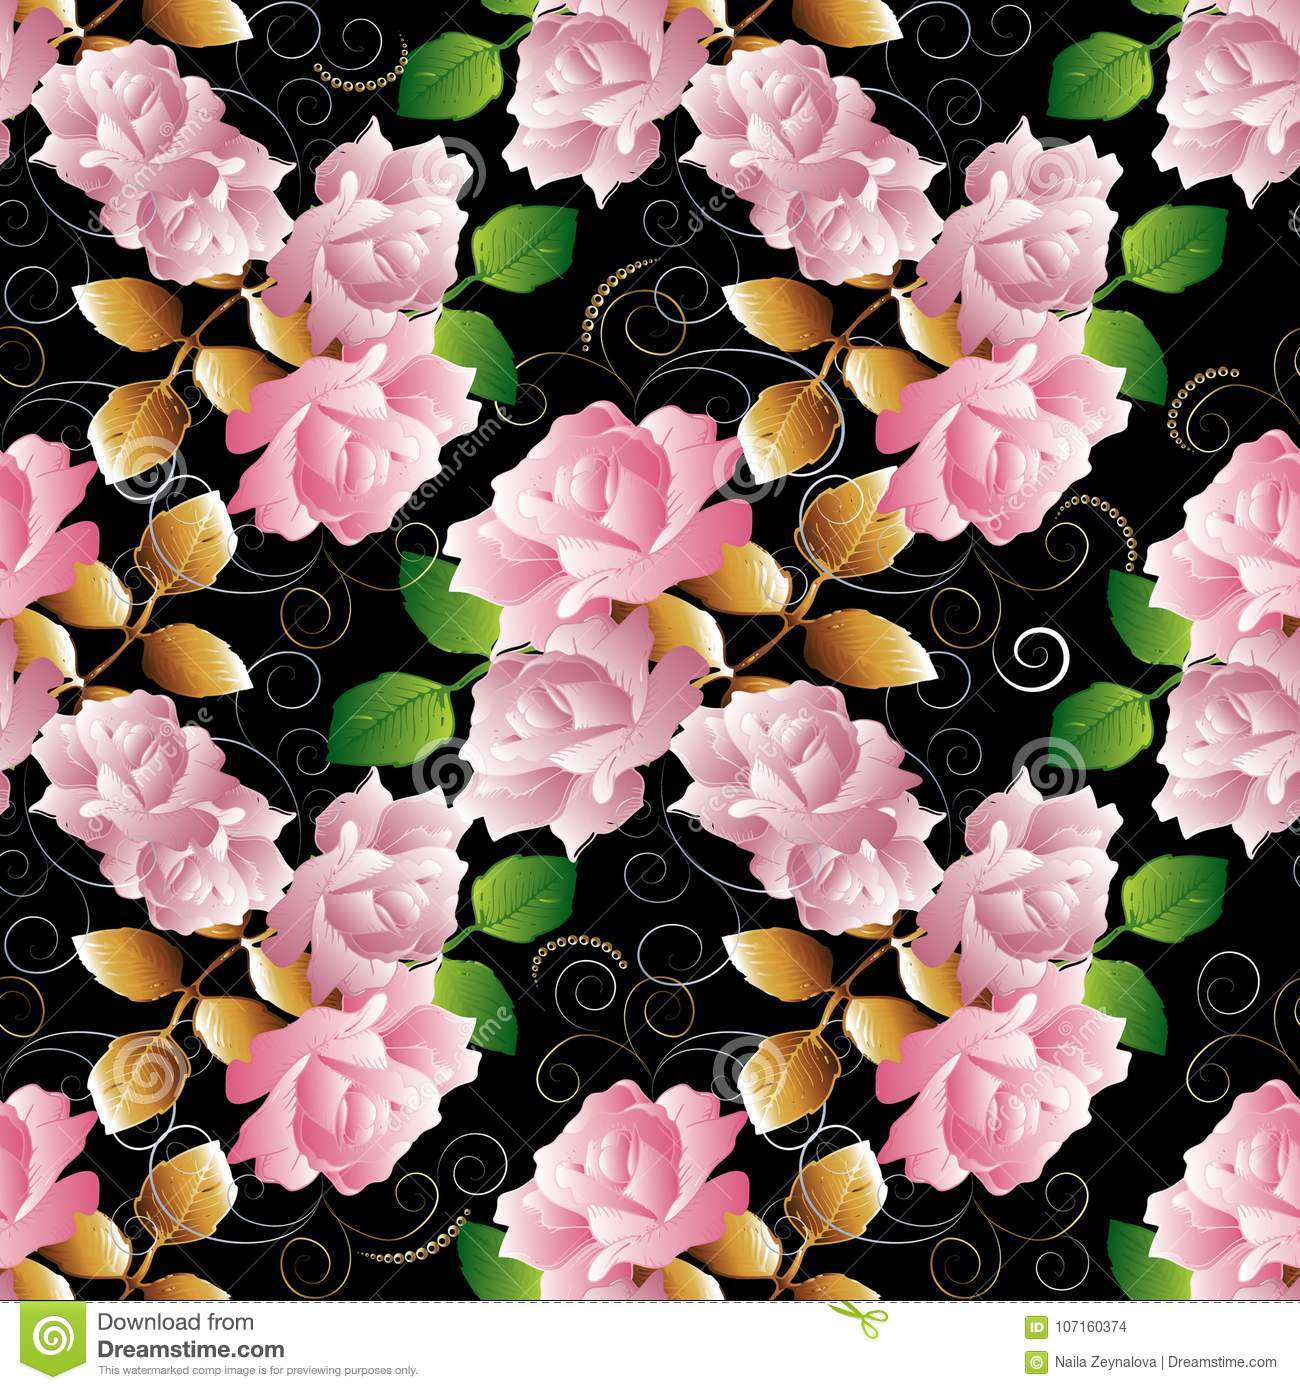 Floral 3d Roses Seamless Pattern Vector Black Background Wallpa